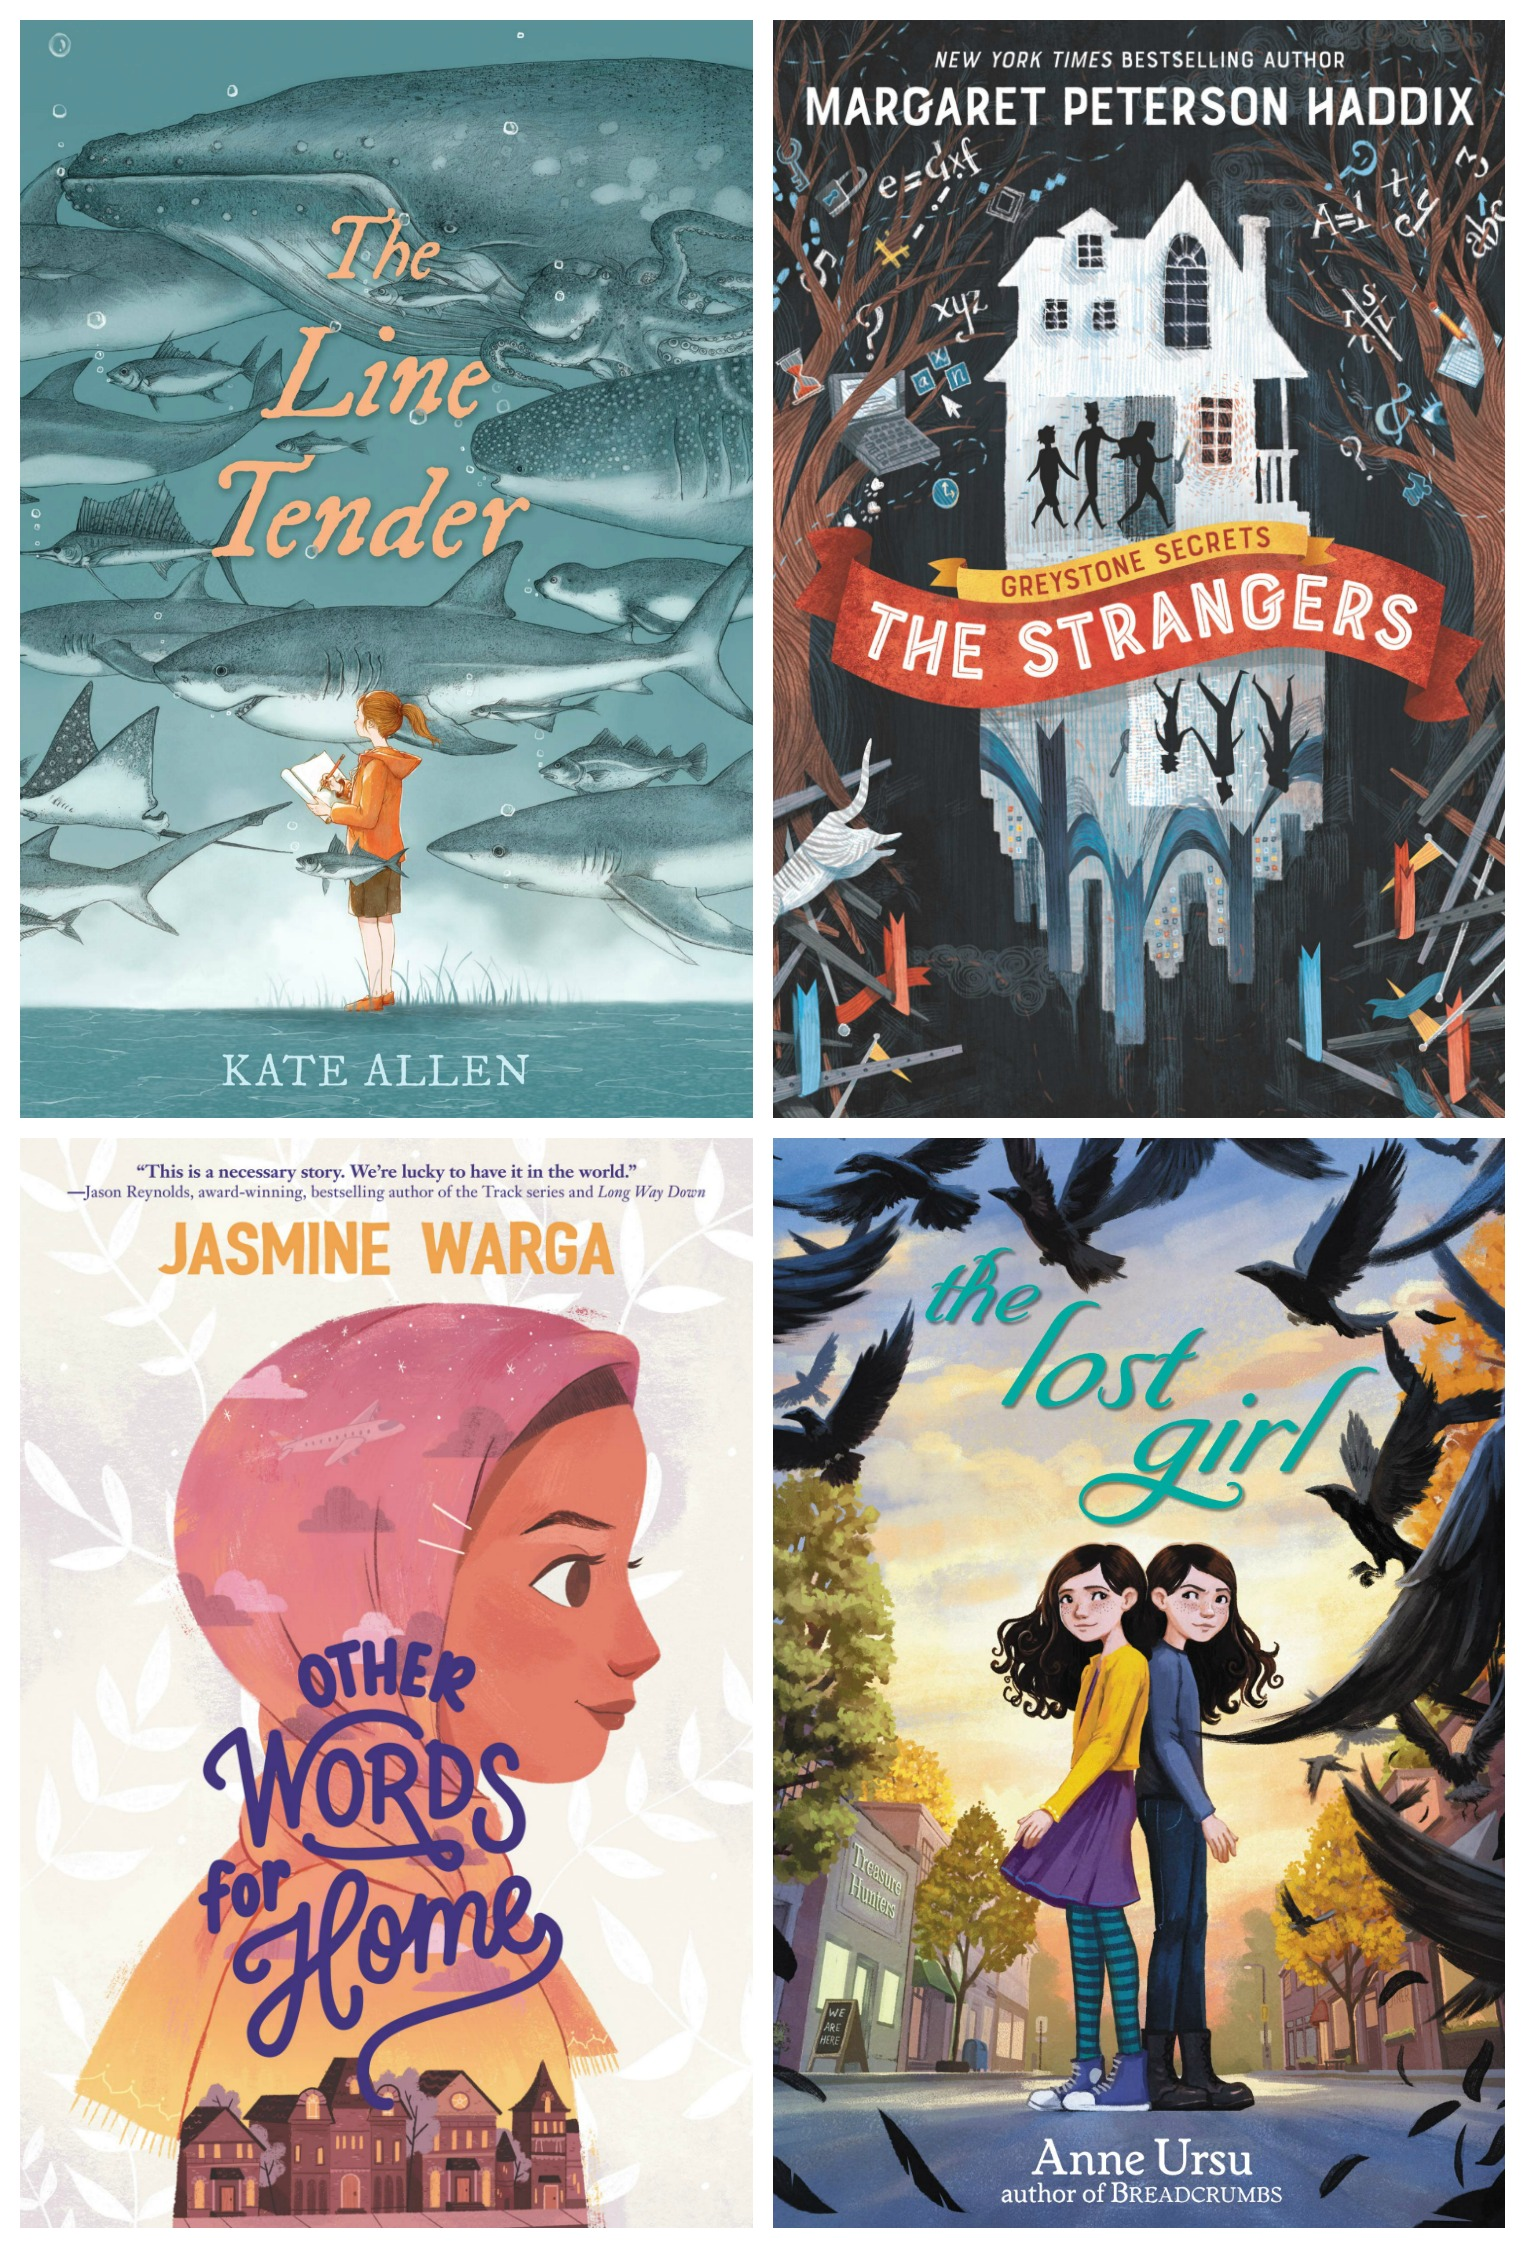 The best children's books of 2019: The Publisher's Weekly choices for best middle grade books